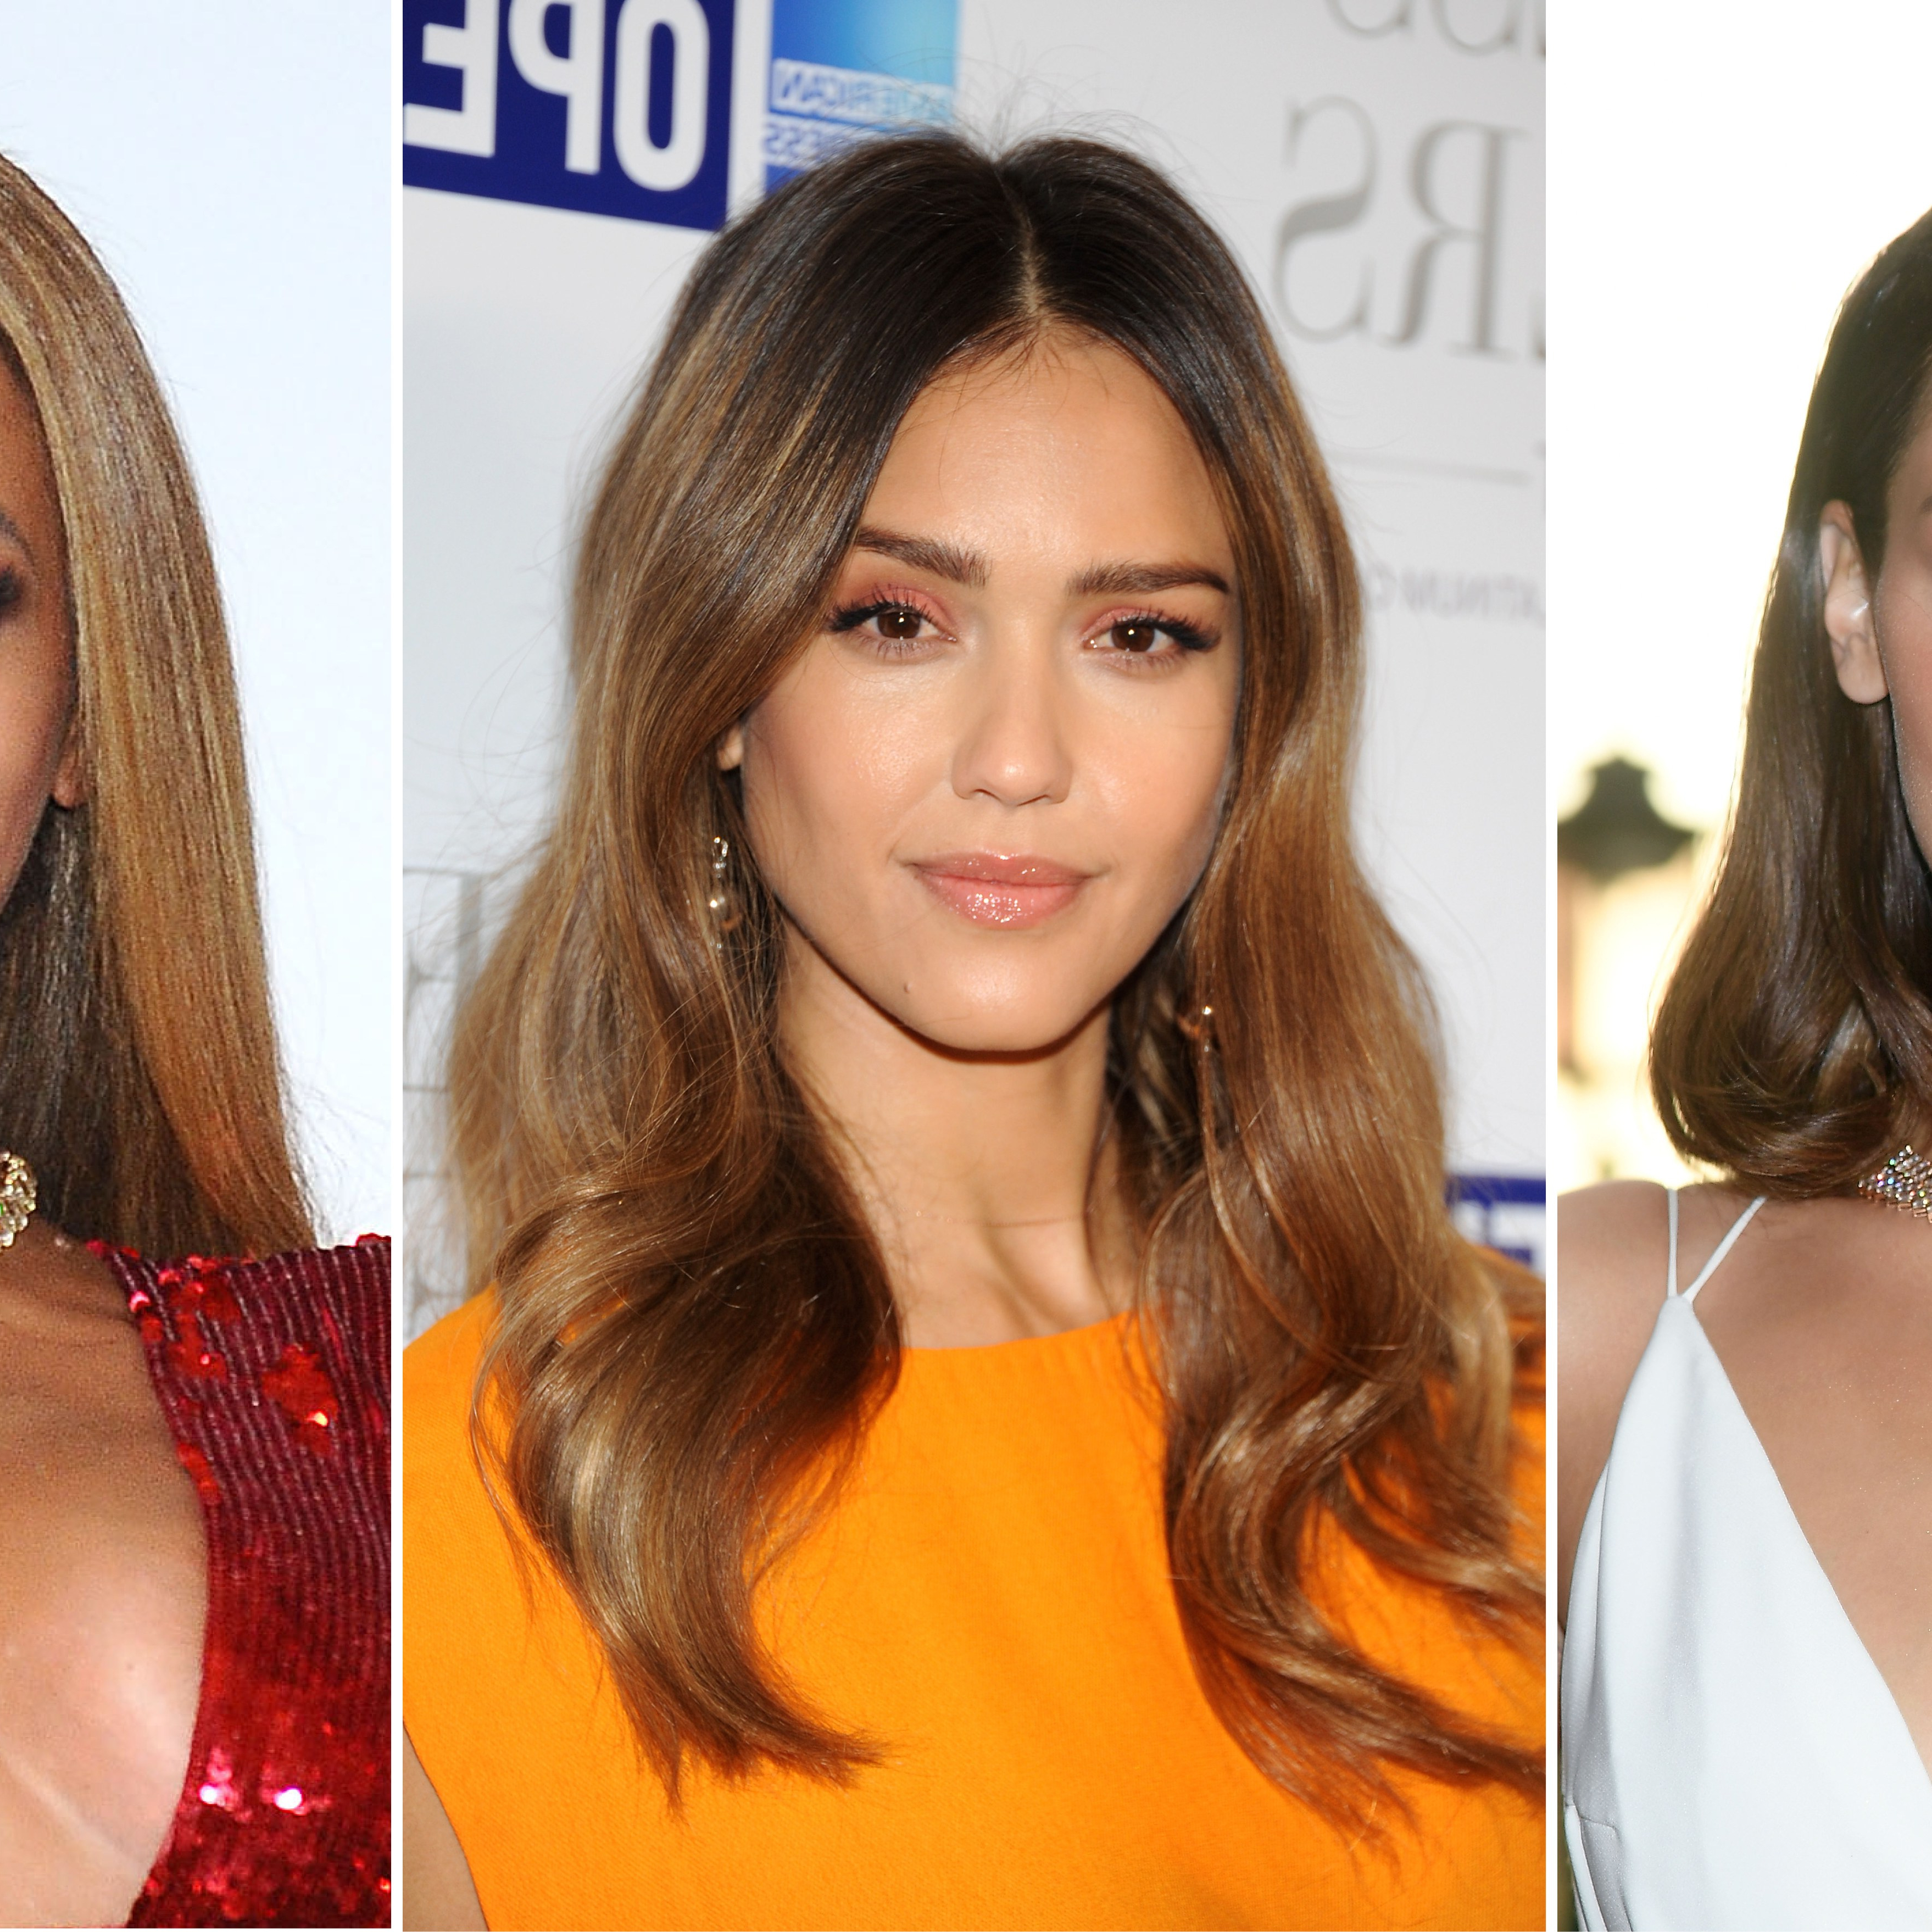 Favorite Low Key Curtain Bangs Hairstyles Throughout The 10 Most Flattering Haircuts For Oval Faces (View 7 of 20)